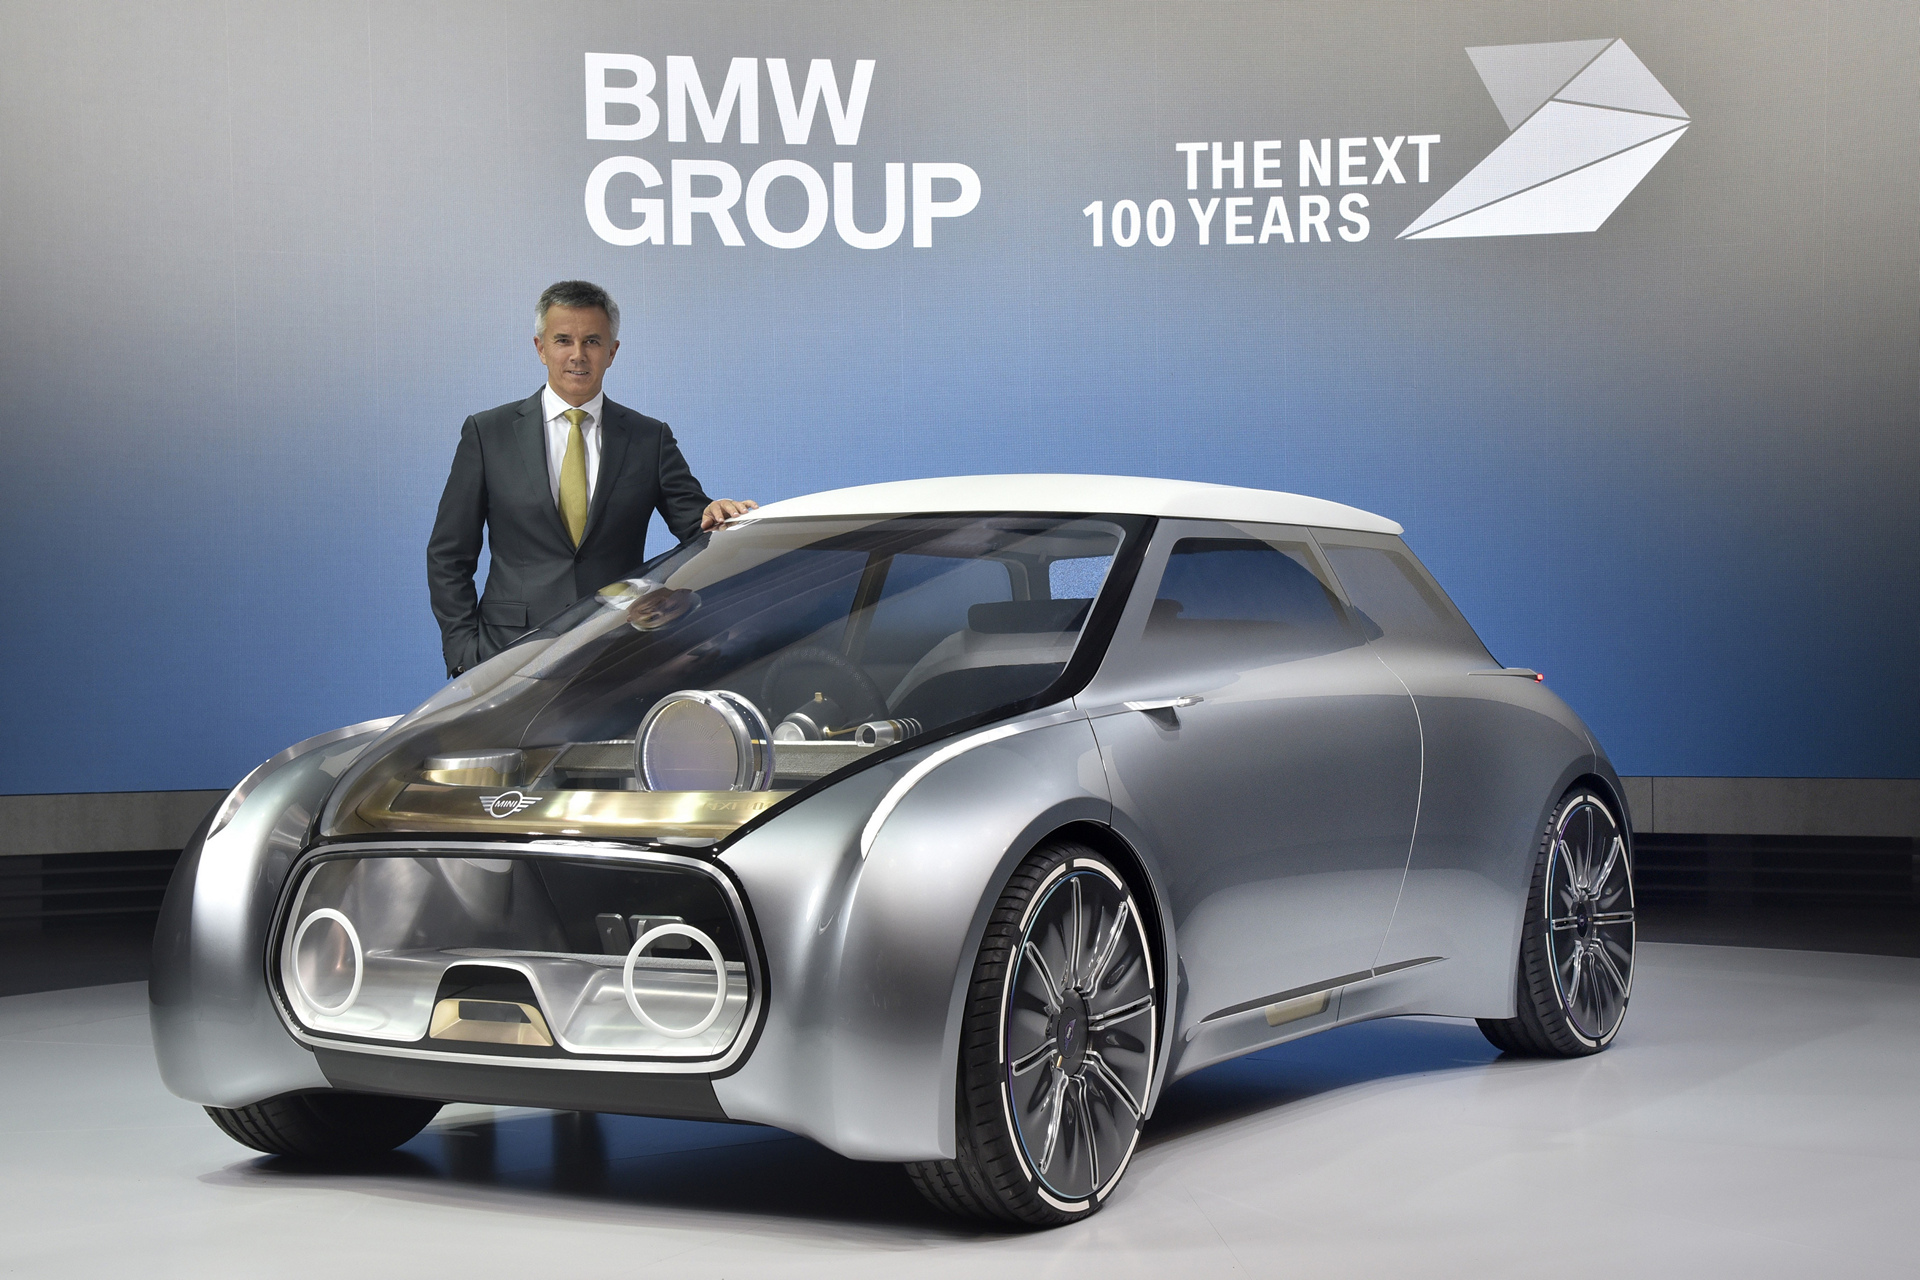 MINI VISION NEXT 100, Peter Schwarzenbauer, Member of the Board of Management of BMW AG, MINI, Motorrad, Rolls-Royce, Aftersales © BMW AG